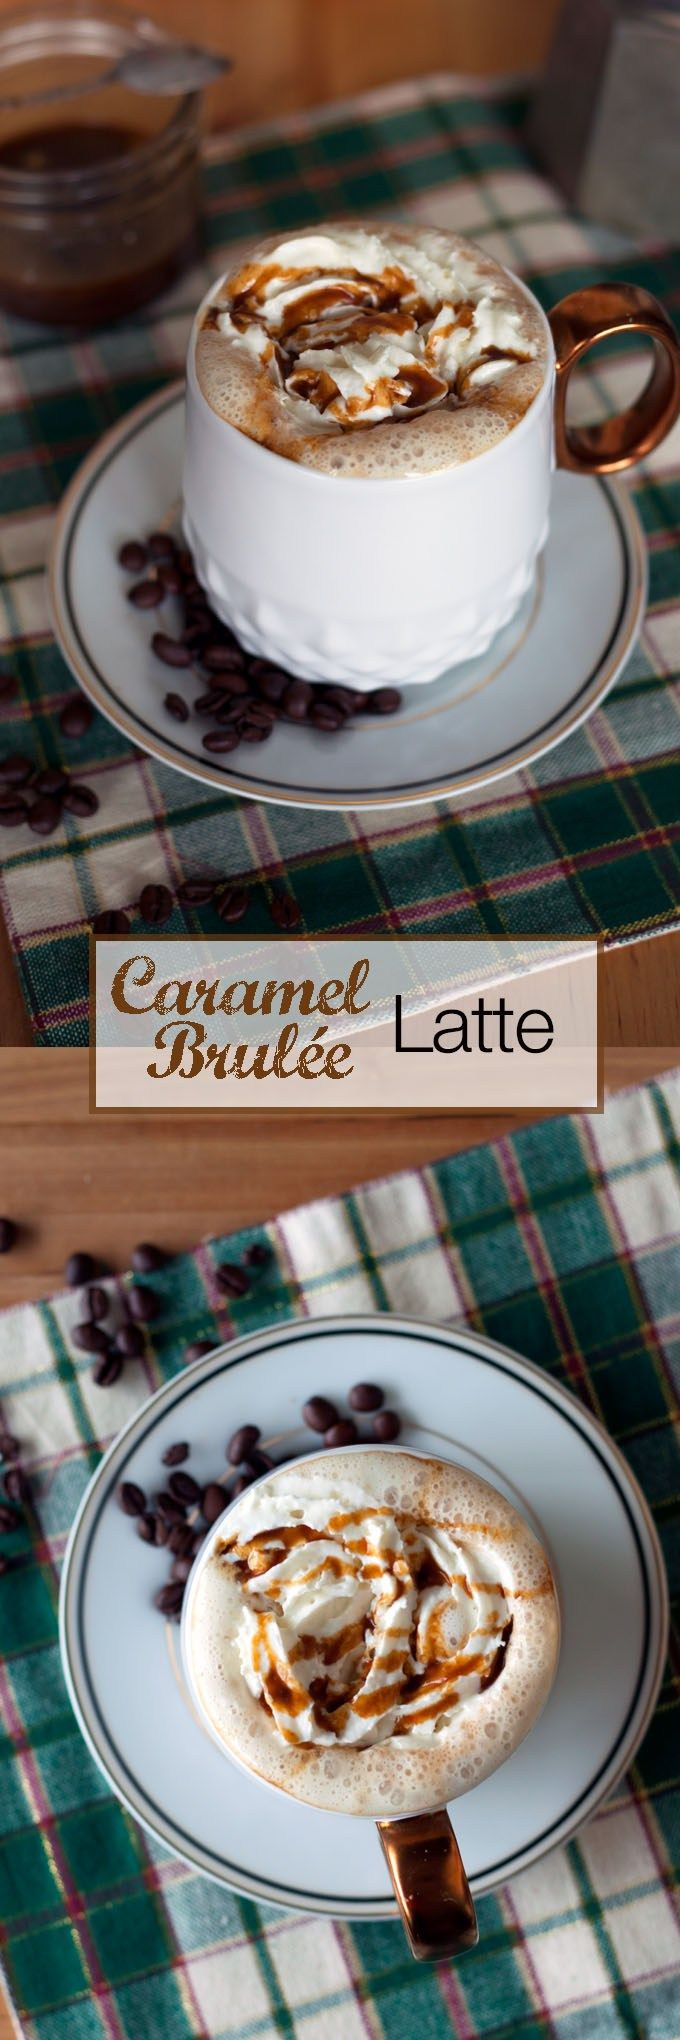 starbucks caramel brulee latte recipe